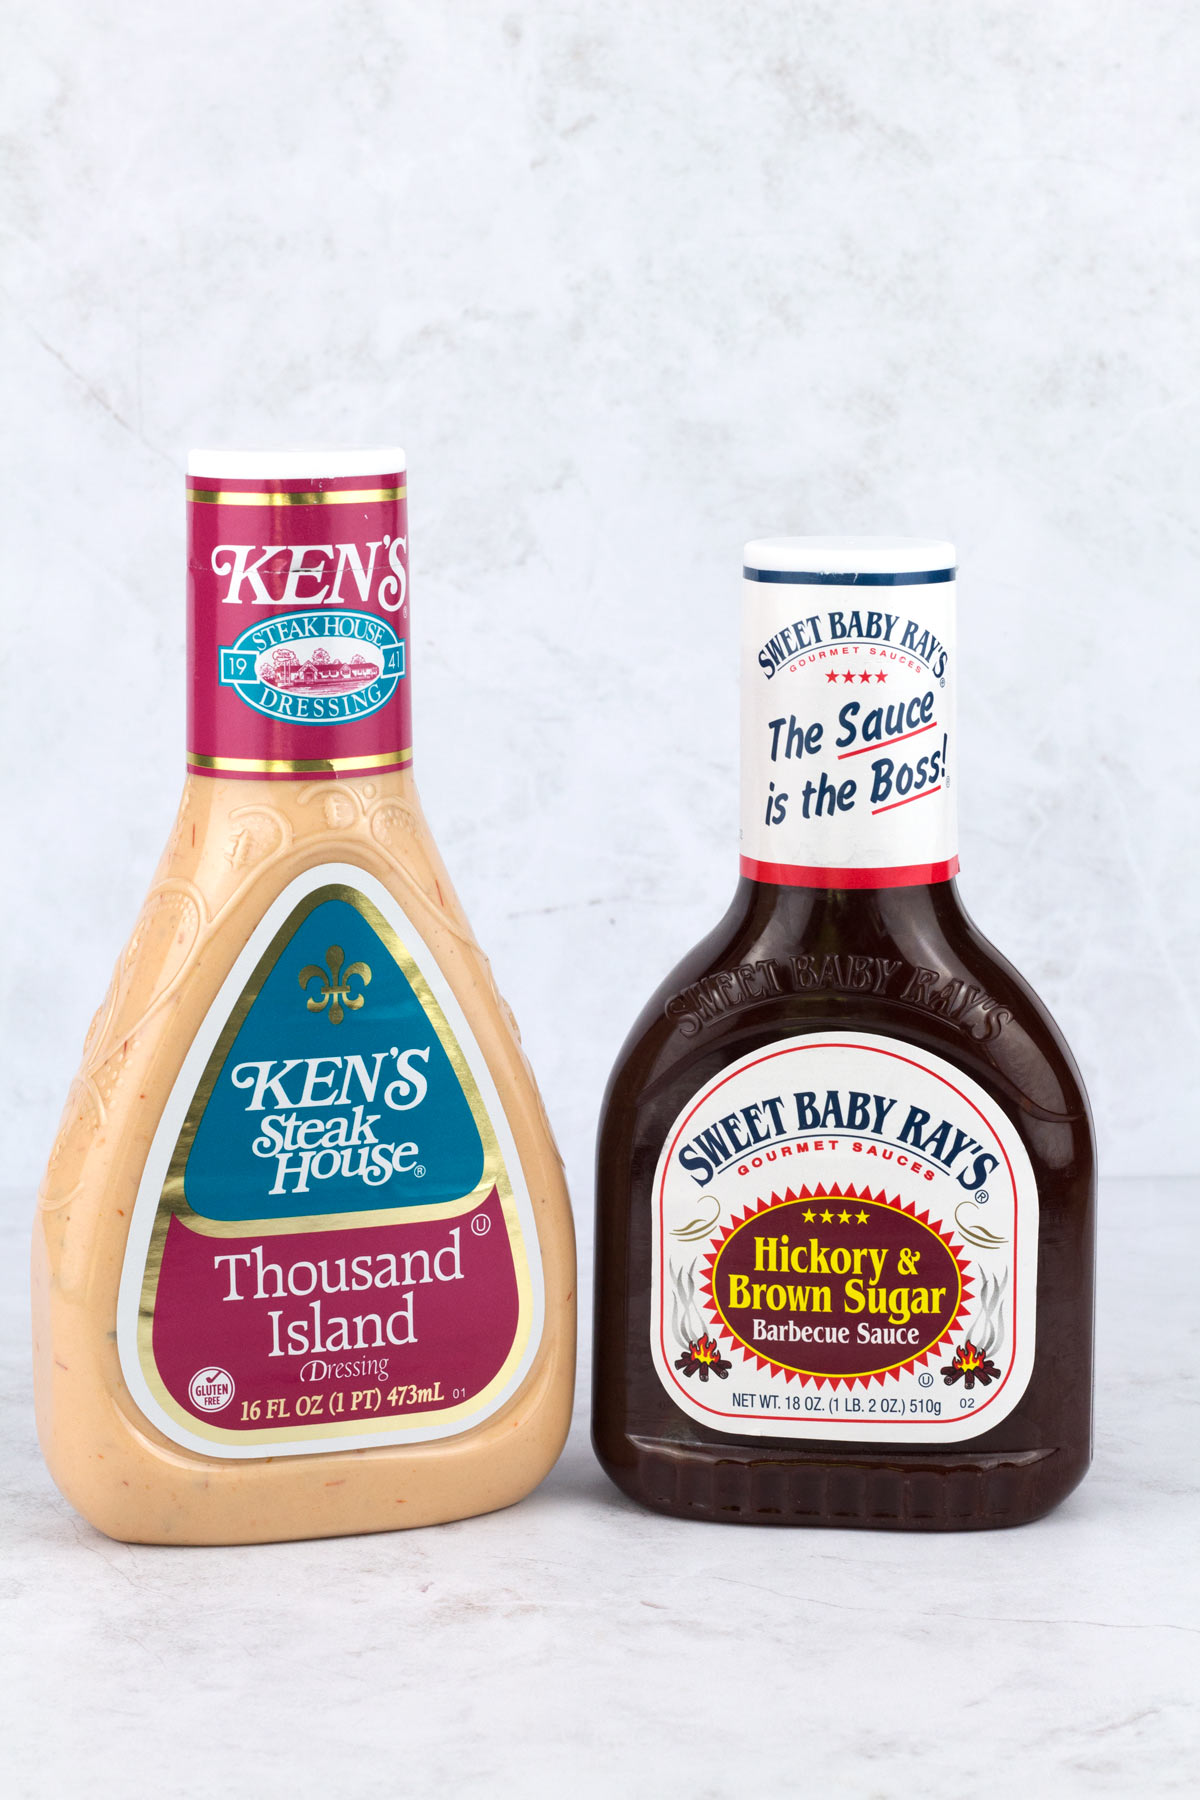 Bottles of Thousand Island dressing and barbecue sauce on counter.